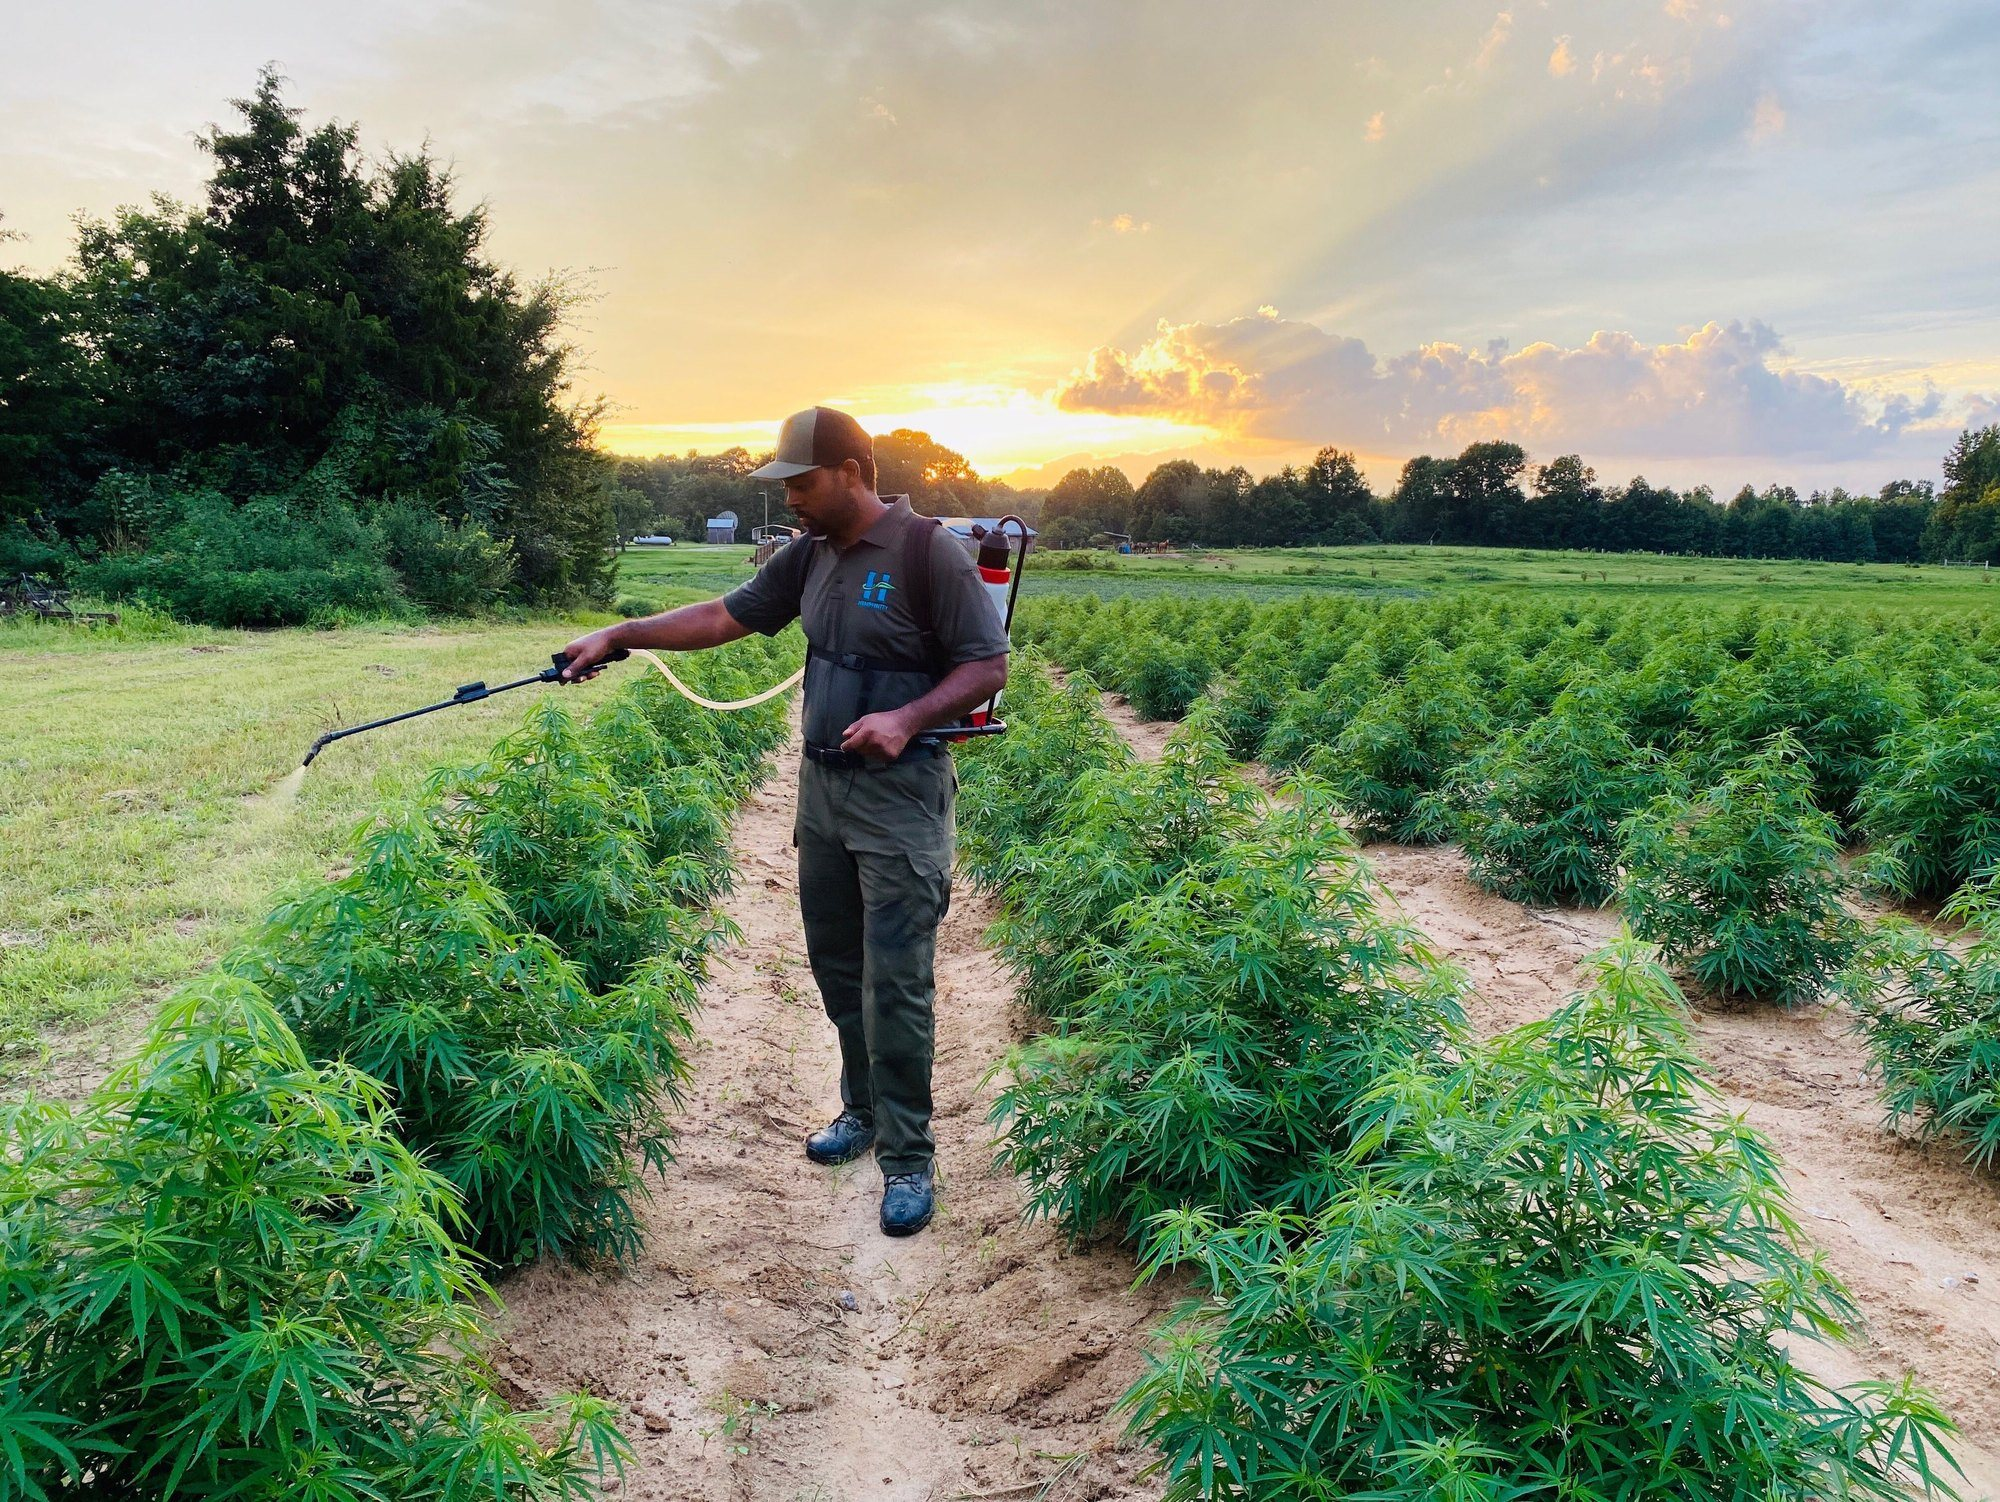 Patrick Brown at Brown Family Farms in North Carolina spraying pesticides on hemp plants. September 2021